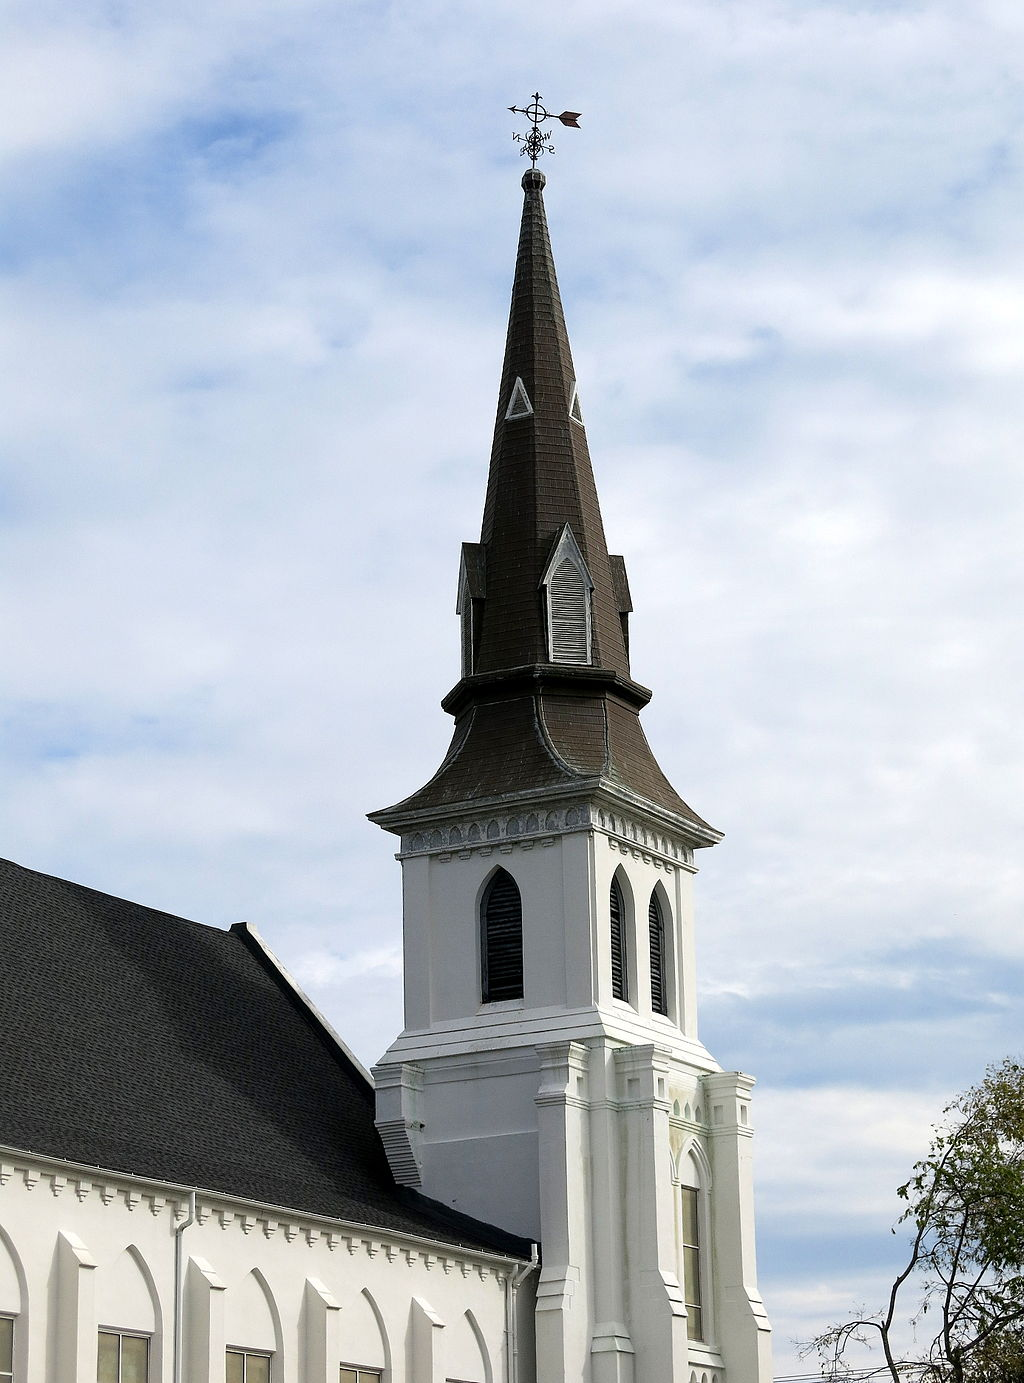 Emanuel African Methodist Episcopal Church Charleston. Photo Source Wikimedia Commons Wikimedia Share Alike License by By Spencer Means from New York City, USA [CC BY-SA 2.0 (http://creativecommons.org/licenses/by-sa/2.0)], via Wikimedia Commons